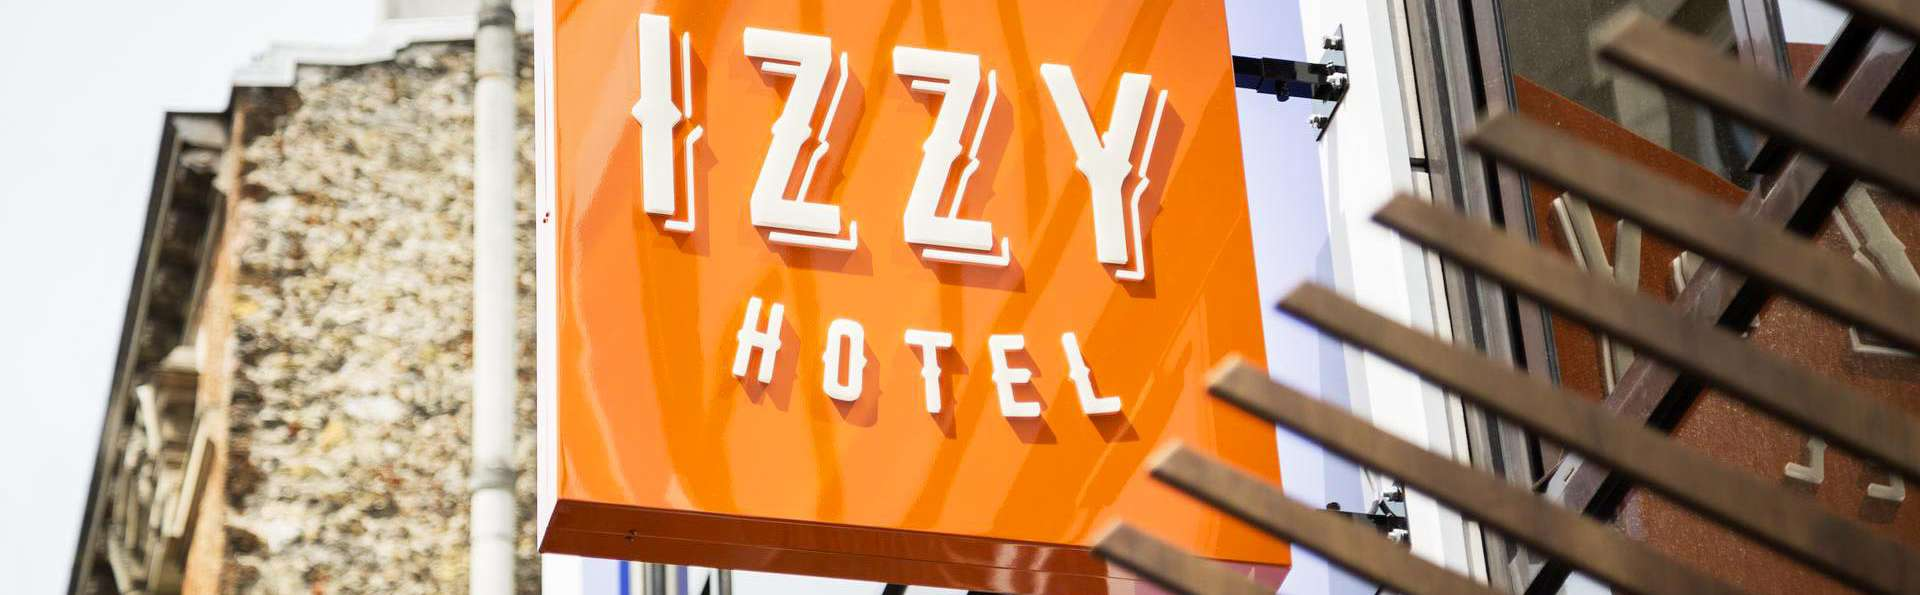 Hôtel Izzy by HappyCulture - EDIT_FRONT_01.jpg